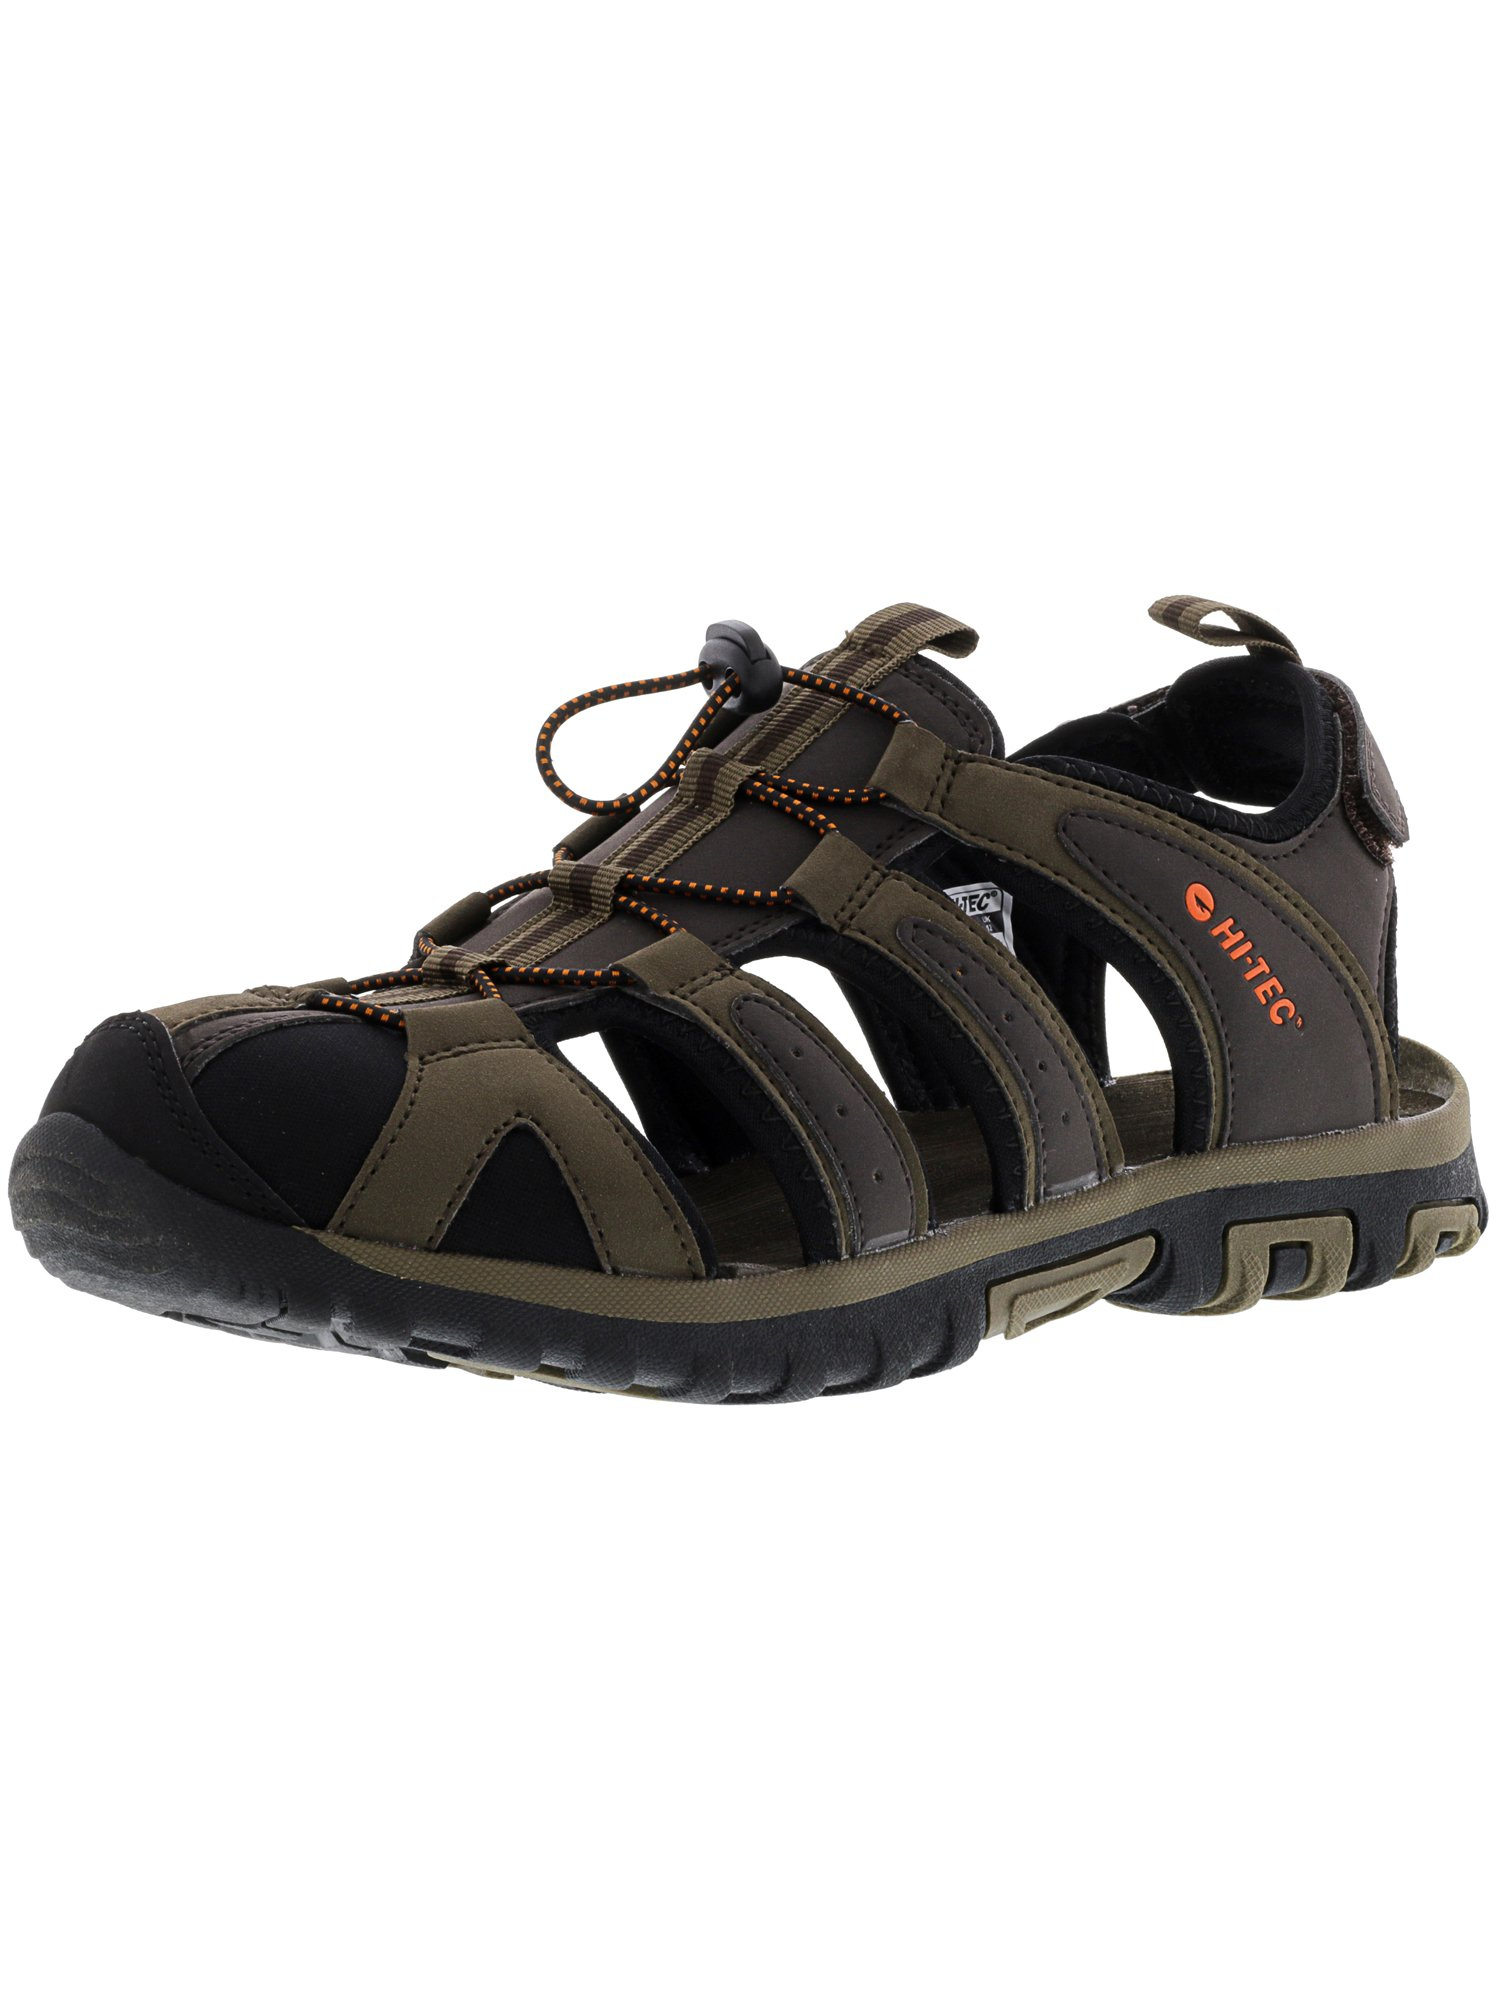 Hi-Tec Men's Cove Dark Chocolate   Burnt Orange Athletic Sandal 13M by Hi-Tec